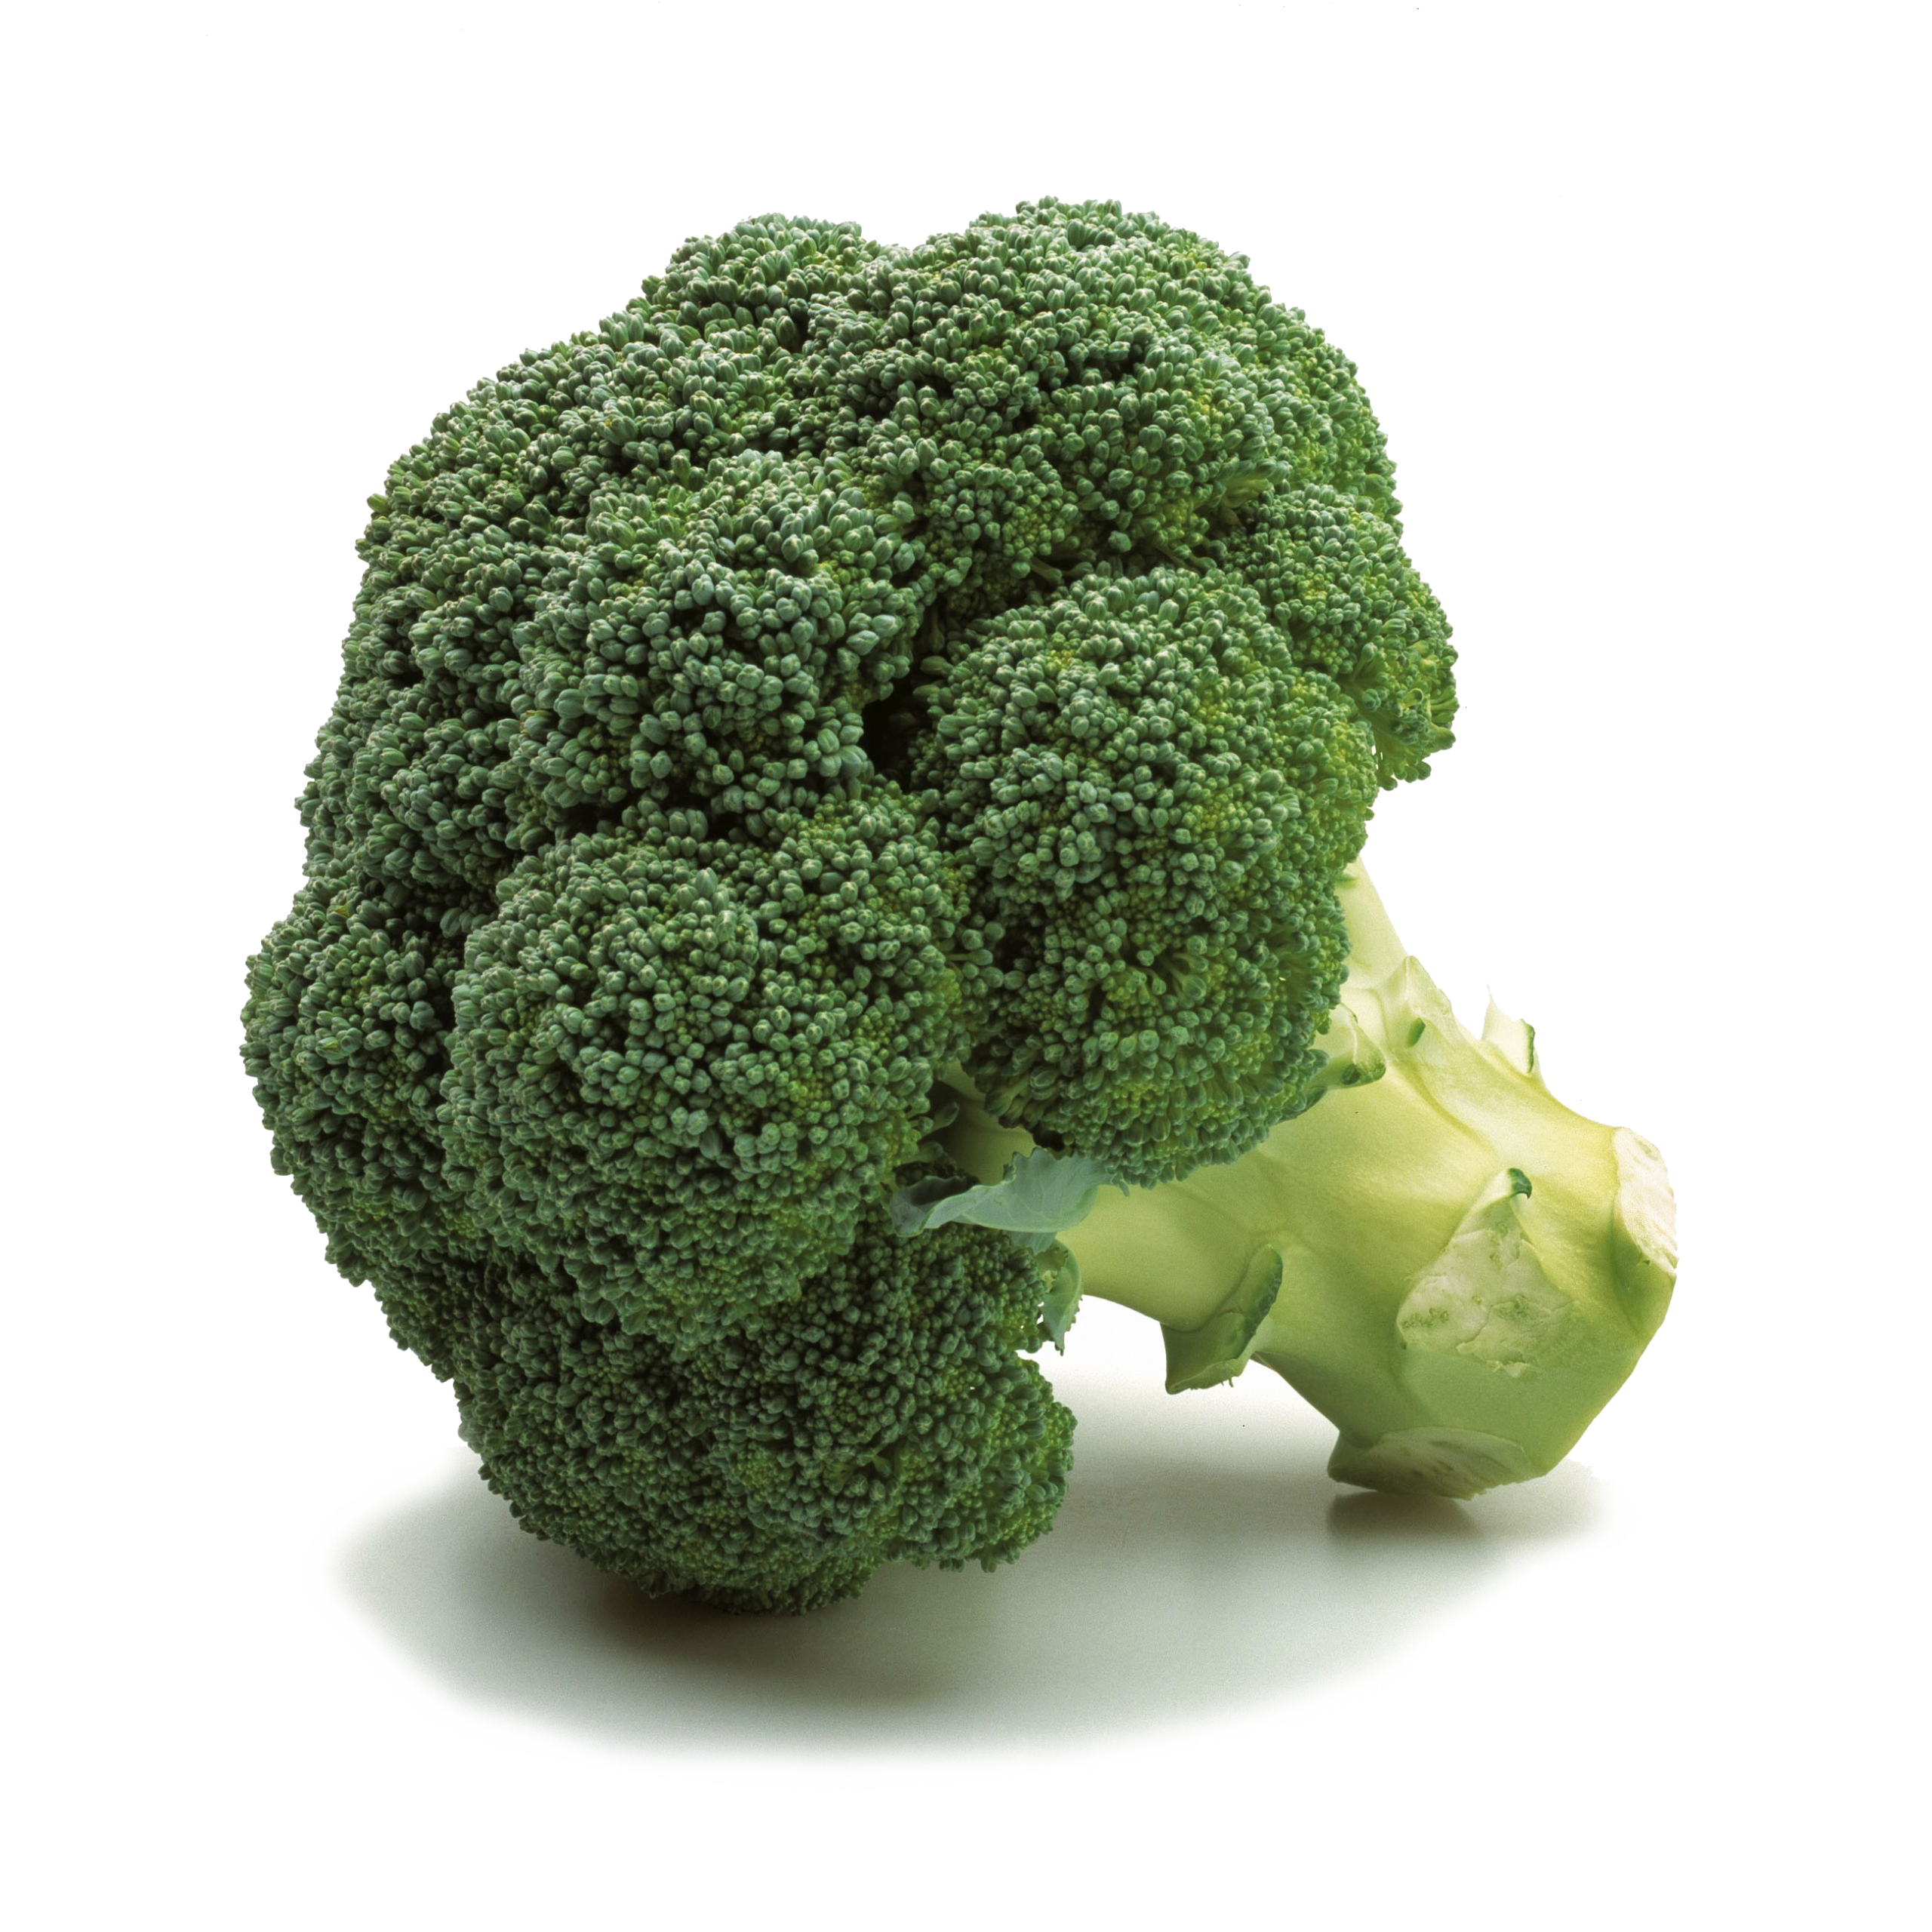 broccoli2_PID